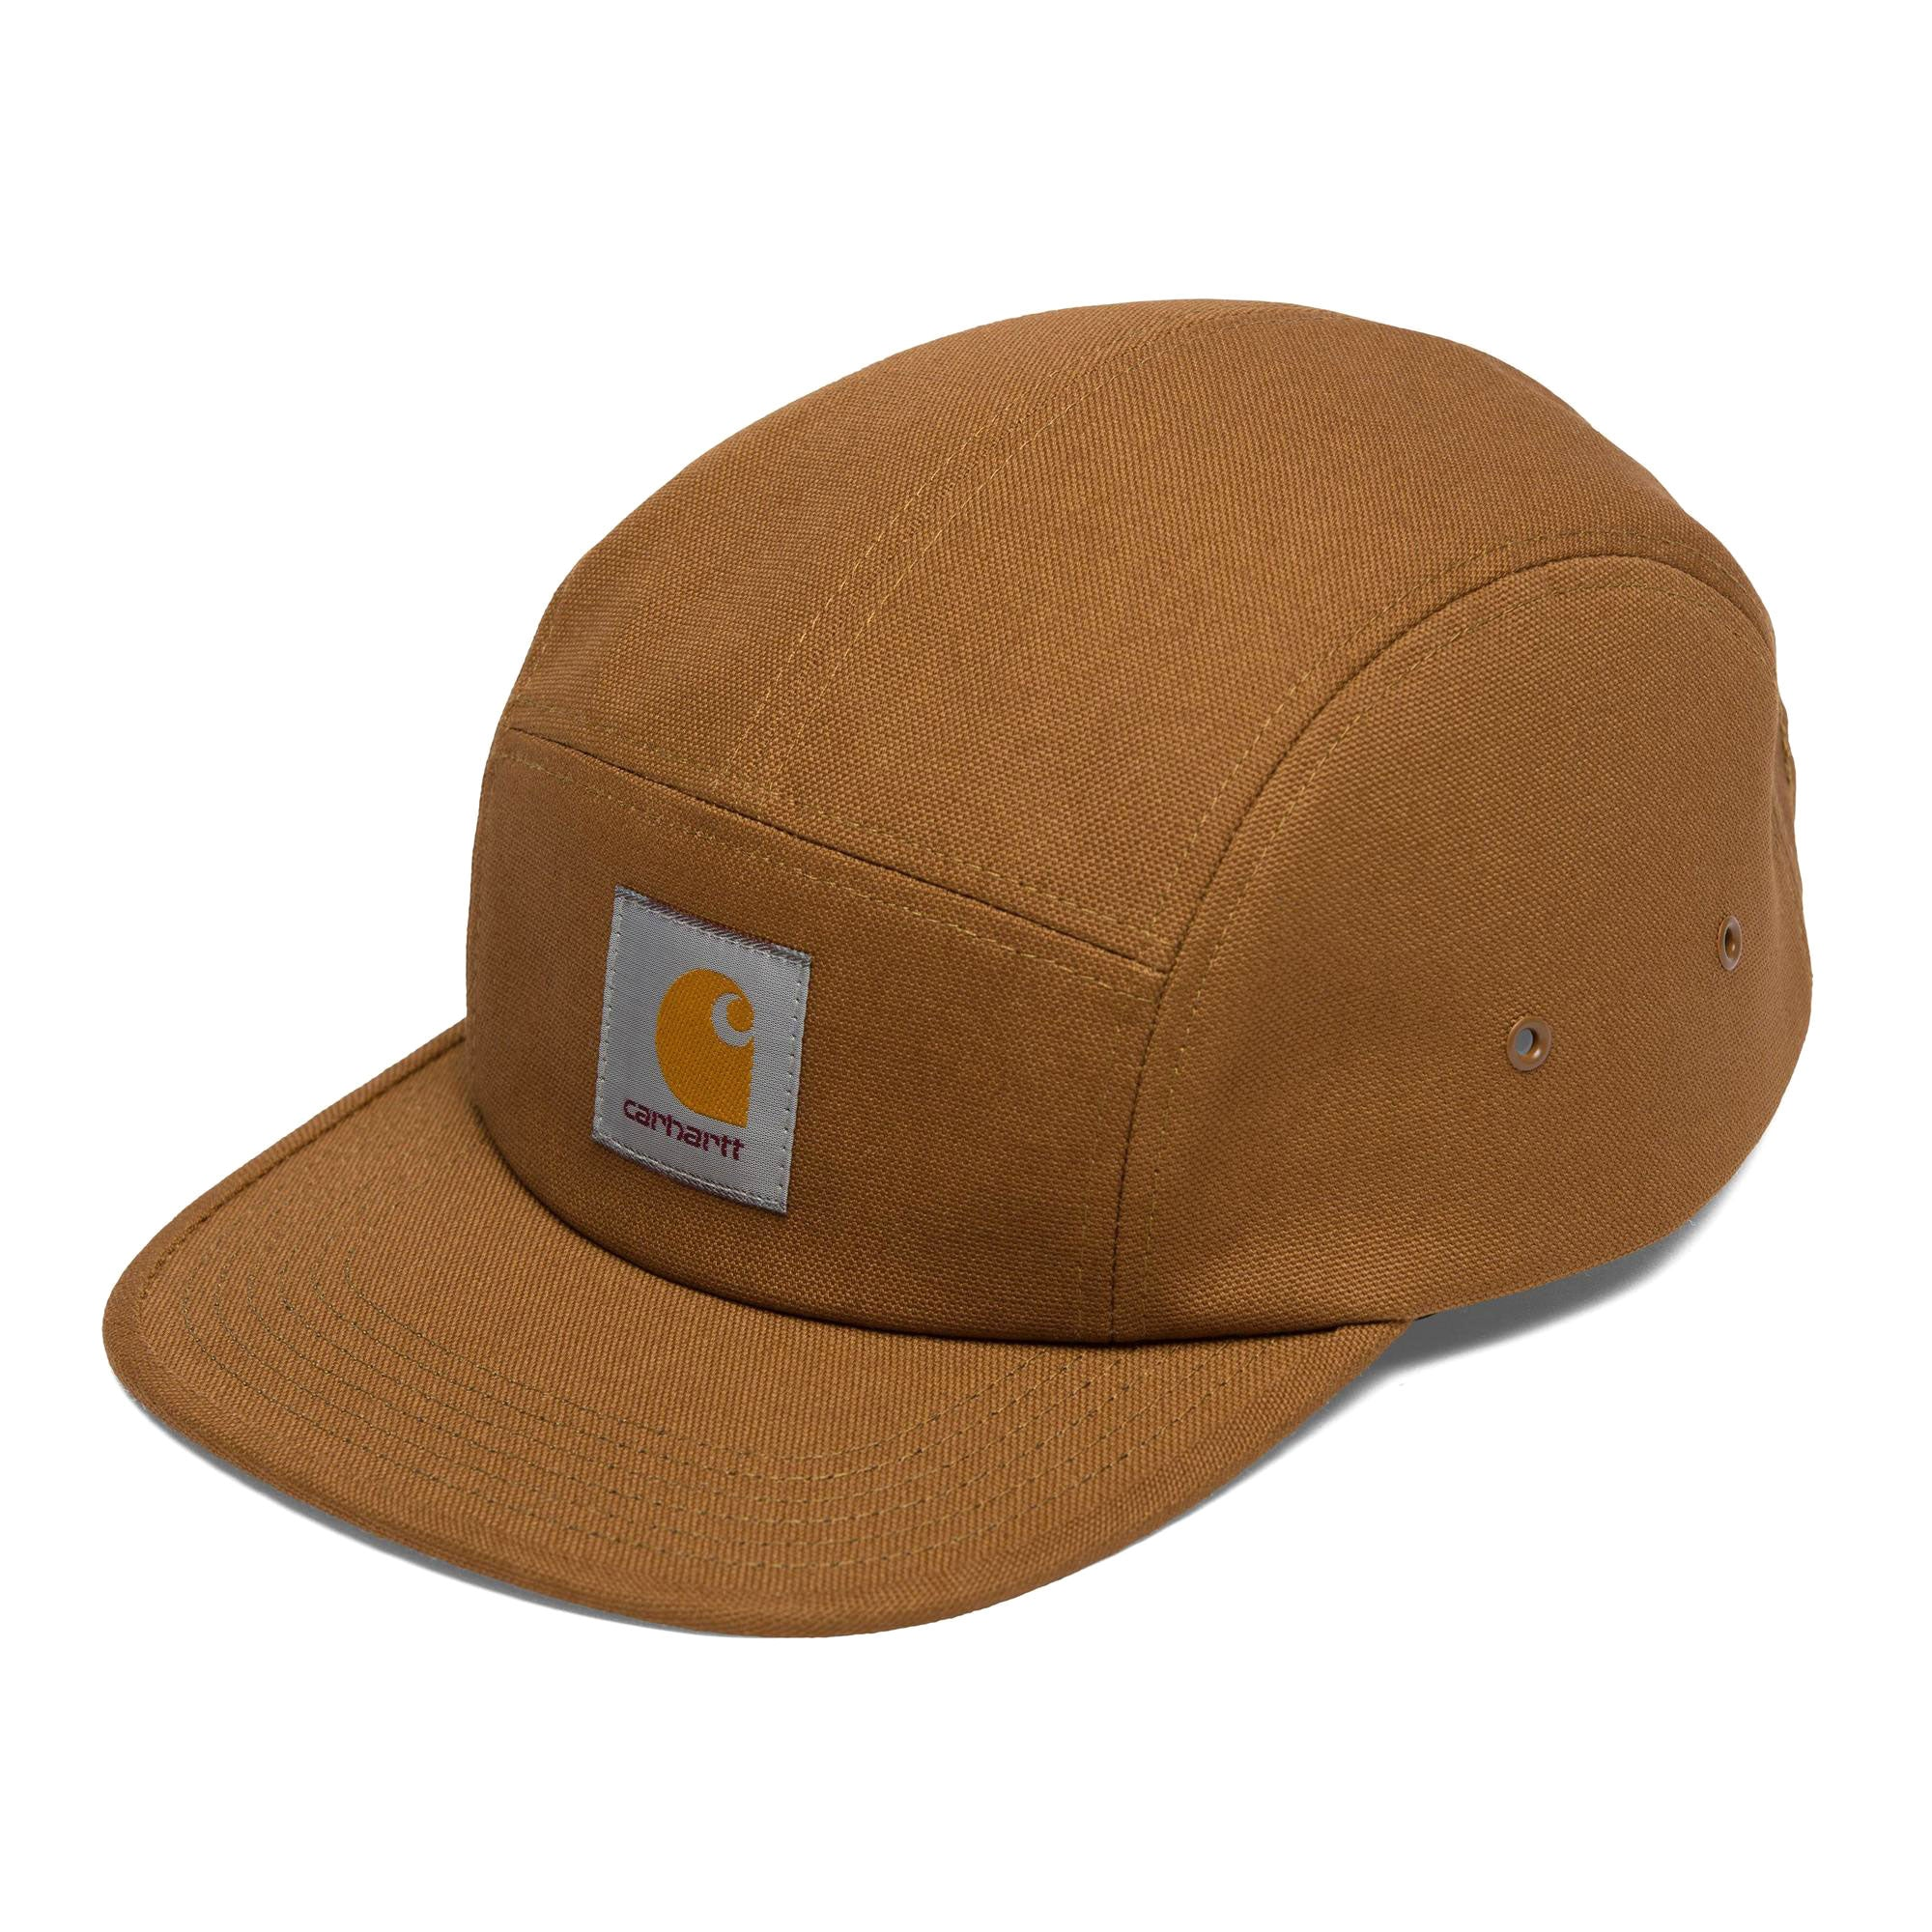 Carhartt Backley Cap Product Photo #1